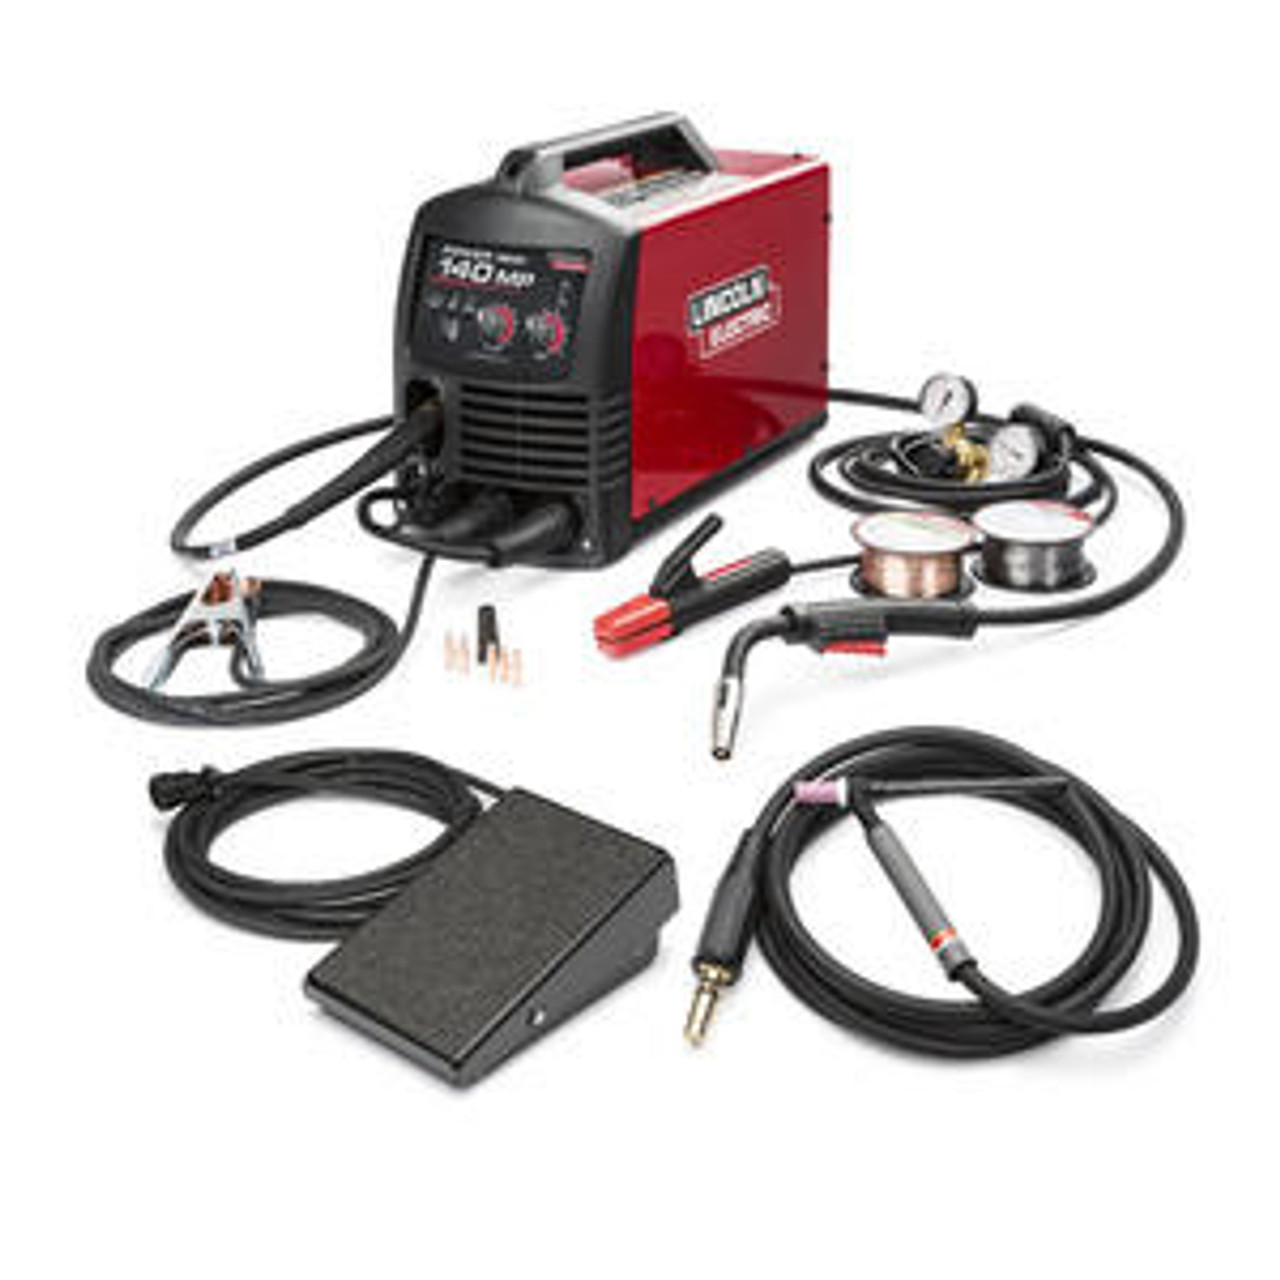 Lincoln Electric Lincoln Electric Power MIG 140 MP Multi-process Welder TIG ONE-PAK - K4499-1